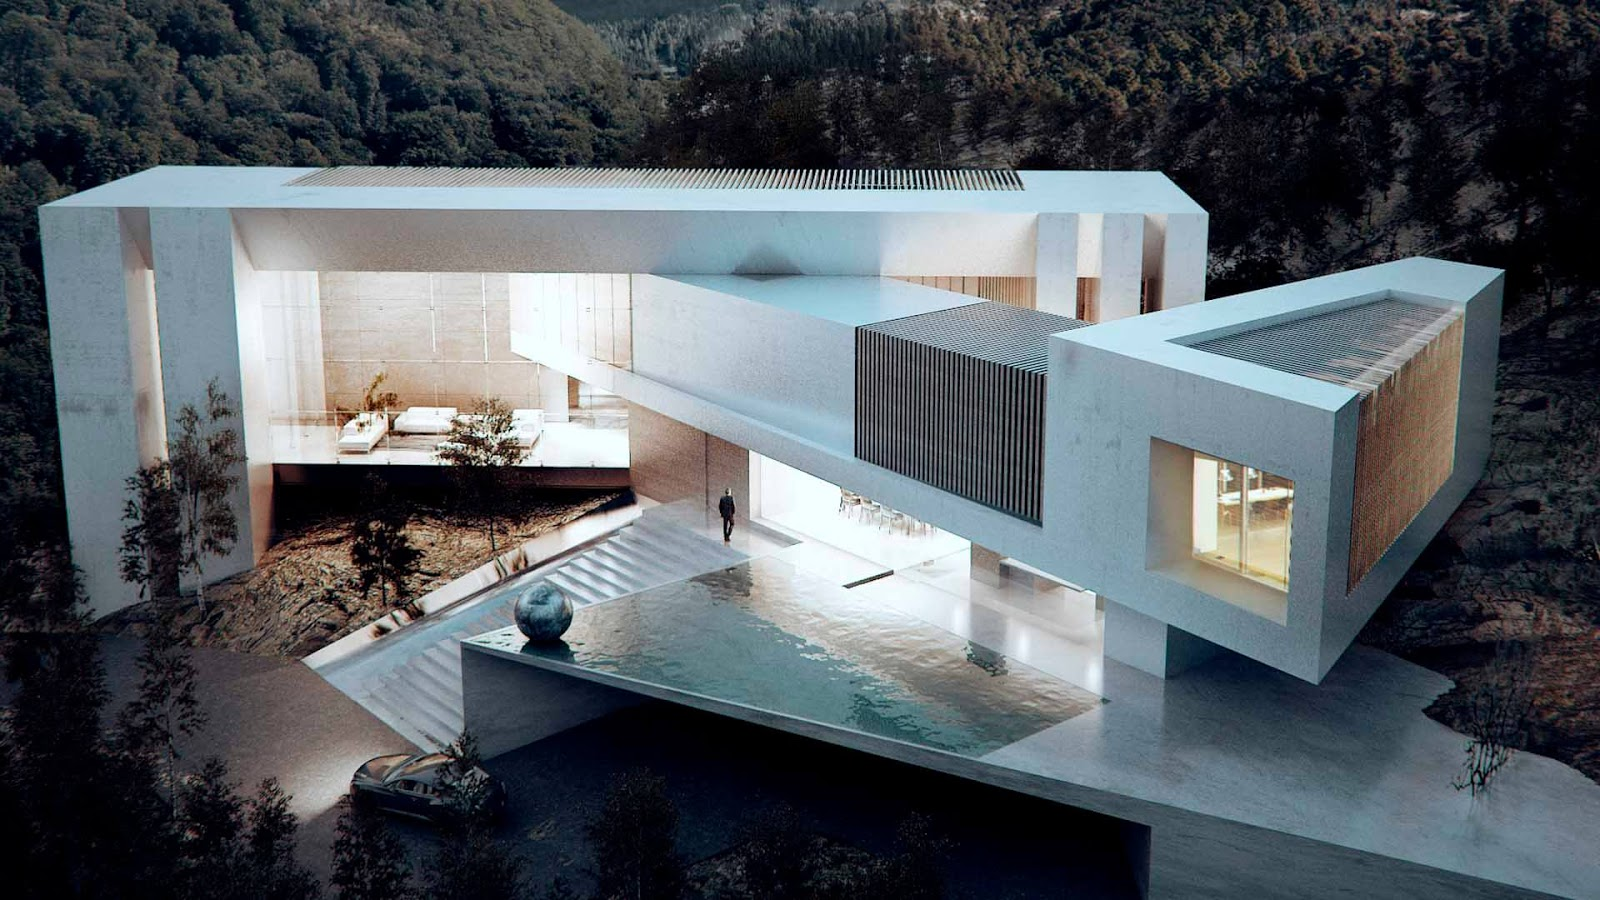 These Blocks Intersect To Give Life To A Harmonious Composition And Volume  Ordered That By Using Large Windows, Double Heights And Terraces, Allow  Make The ...